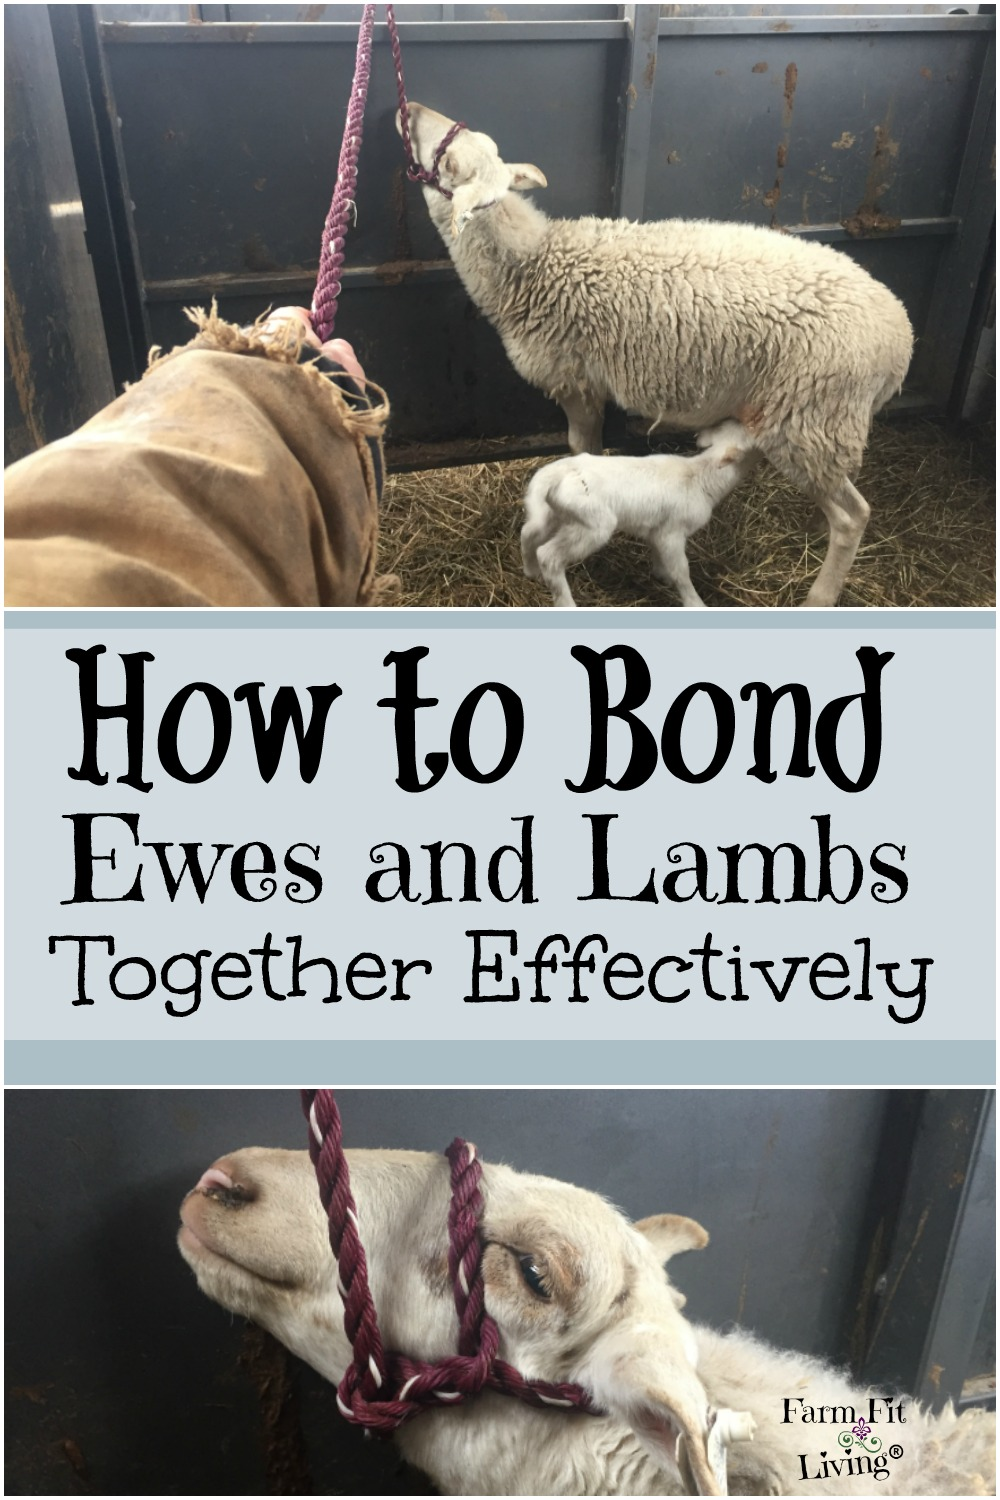 How to Bond Ewes and Lambs Together